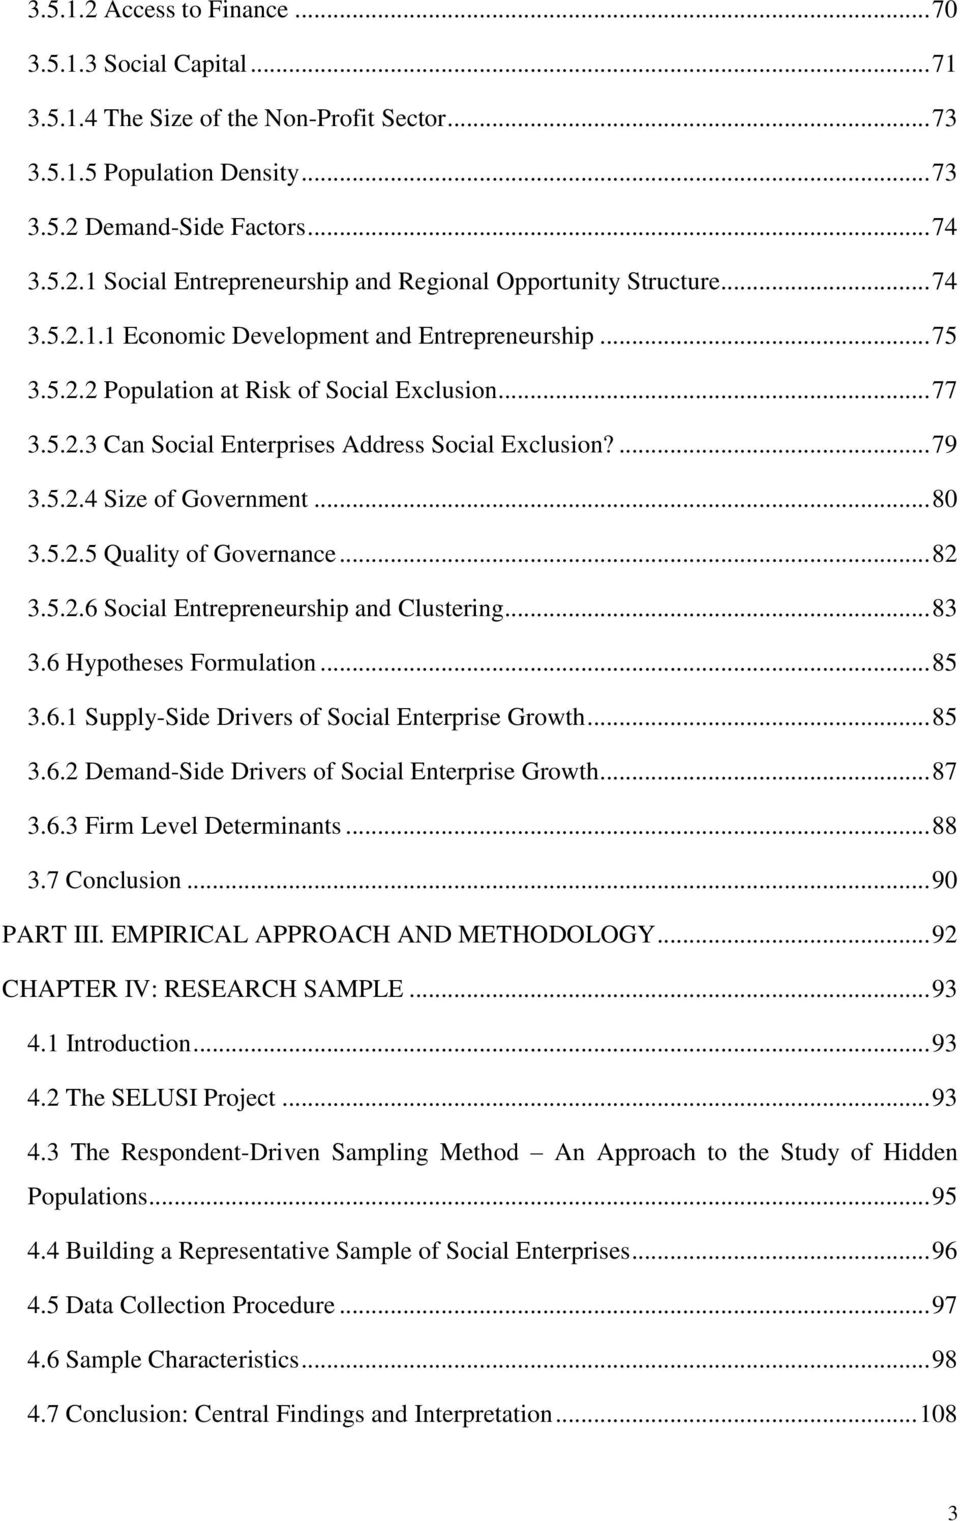 .. 80 3.5.2.5 Quality of Governance... 82 3.5.2.6 Social Entrepreneurship and Clustering... 83 3.6 Hypotheses Formulation... 85 3.6.1 Supply-Side Drivers of Social Enterprise Growth... 85 3.6.2 Demand-Side Drivers of Social Enterprise Growth.